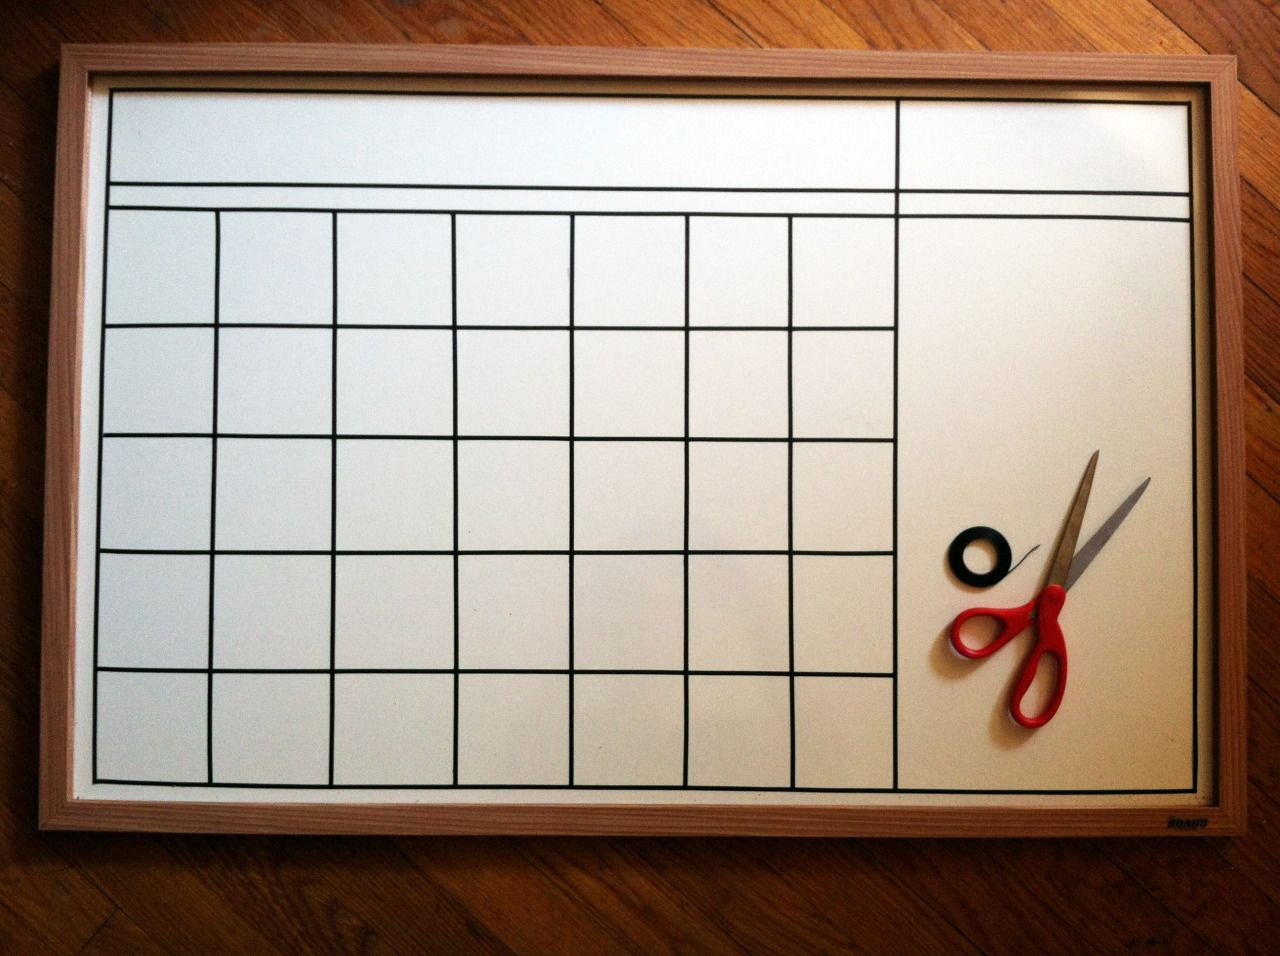 Diy calendar on a whiteboard clean and organize pinterest diy calendar on a whiteboard solutioingenieria Image collections